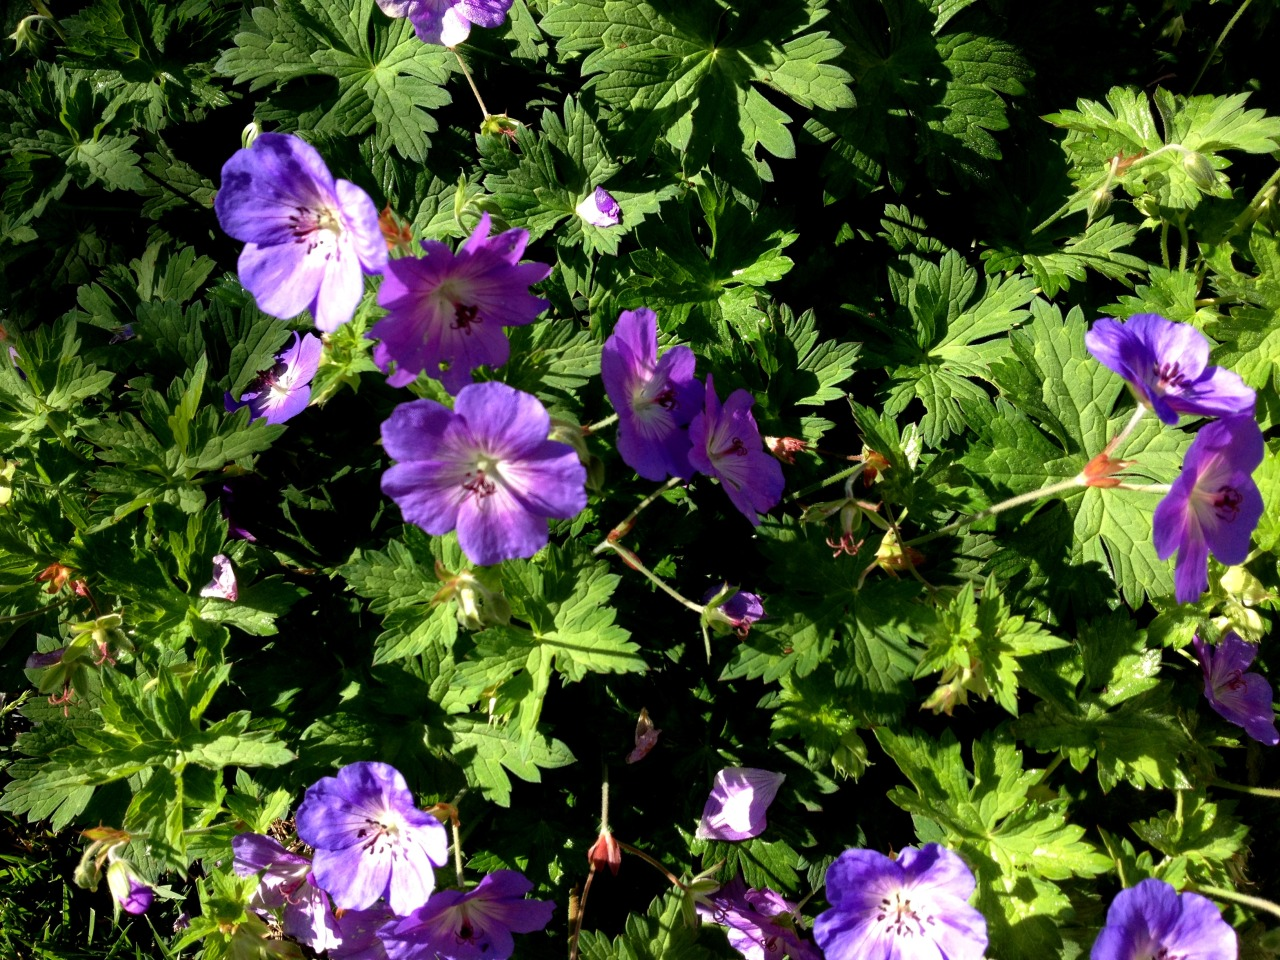 September 21, 2013    Three large Geranium 'Rozanne' plants scramble about in a bed next to the edible garden. Bees frequent the plants all day which may help with pollination in the garden.  See more images  of the planting in early spring.